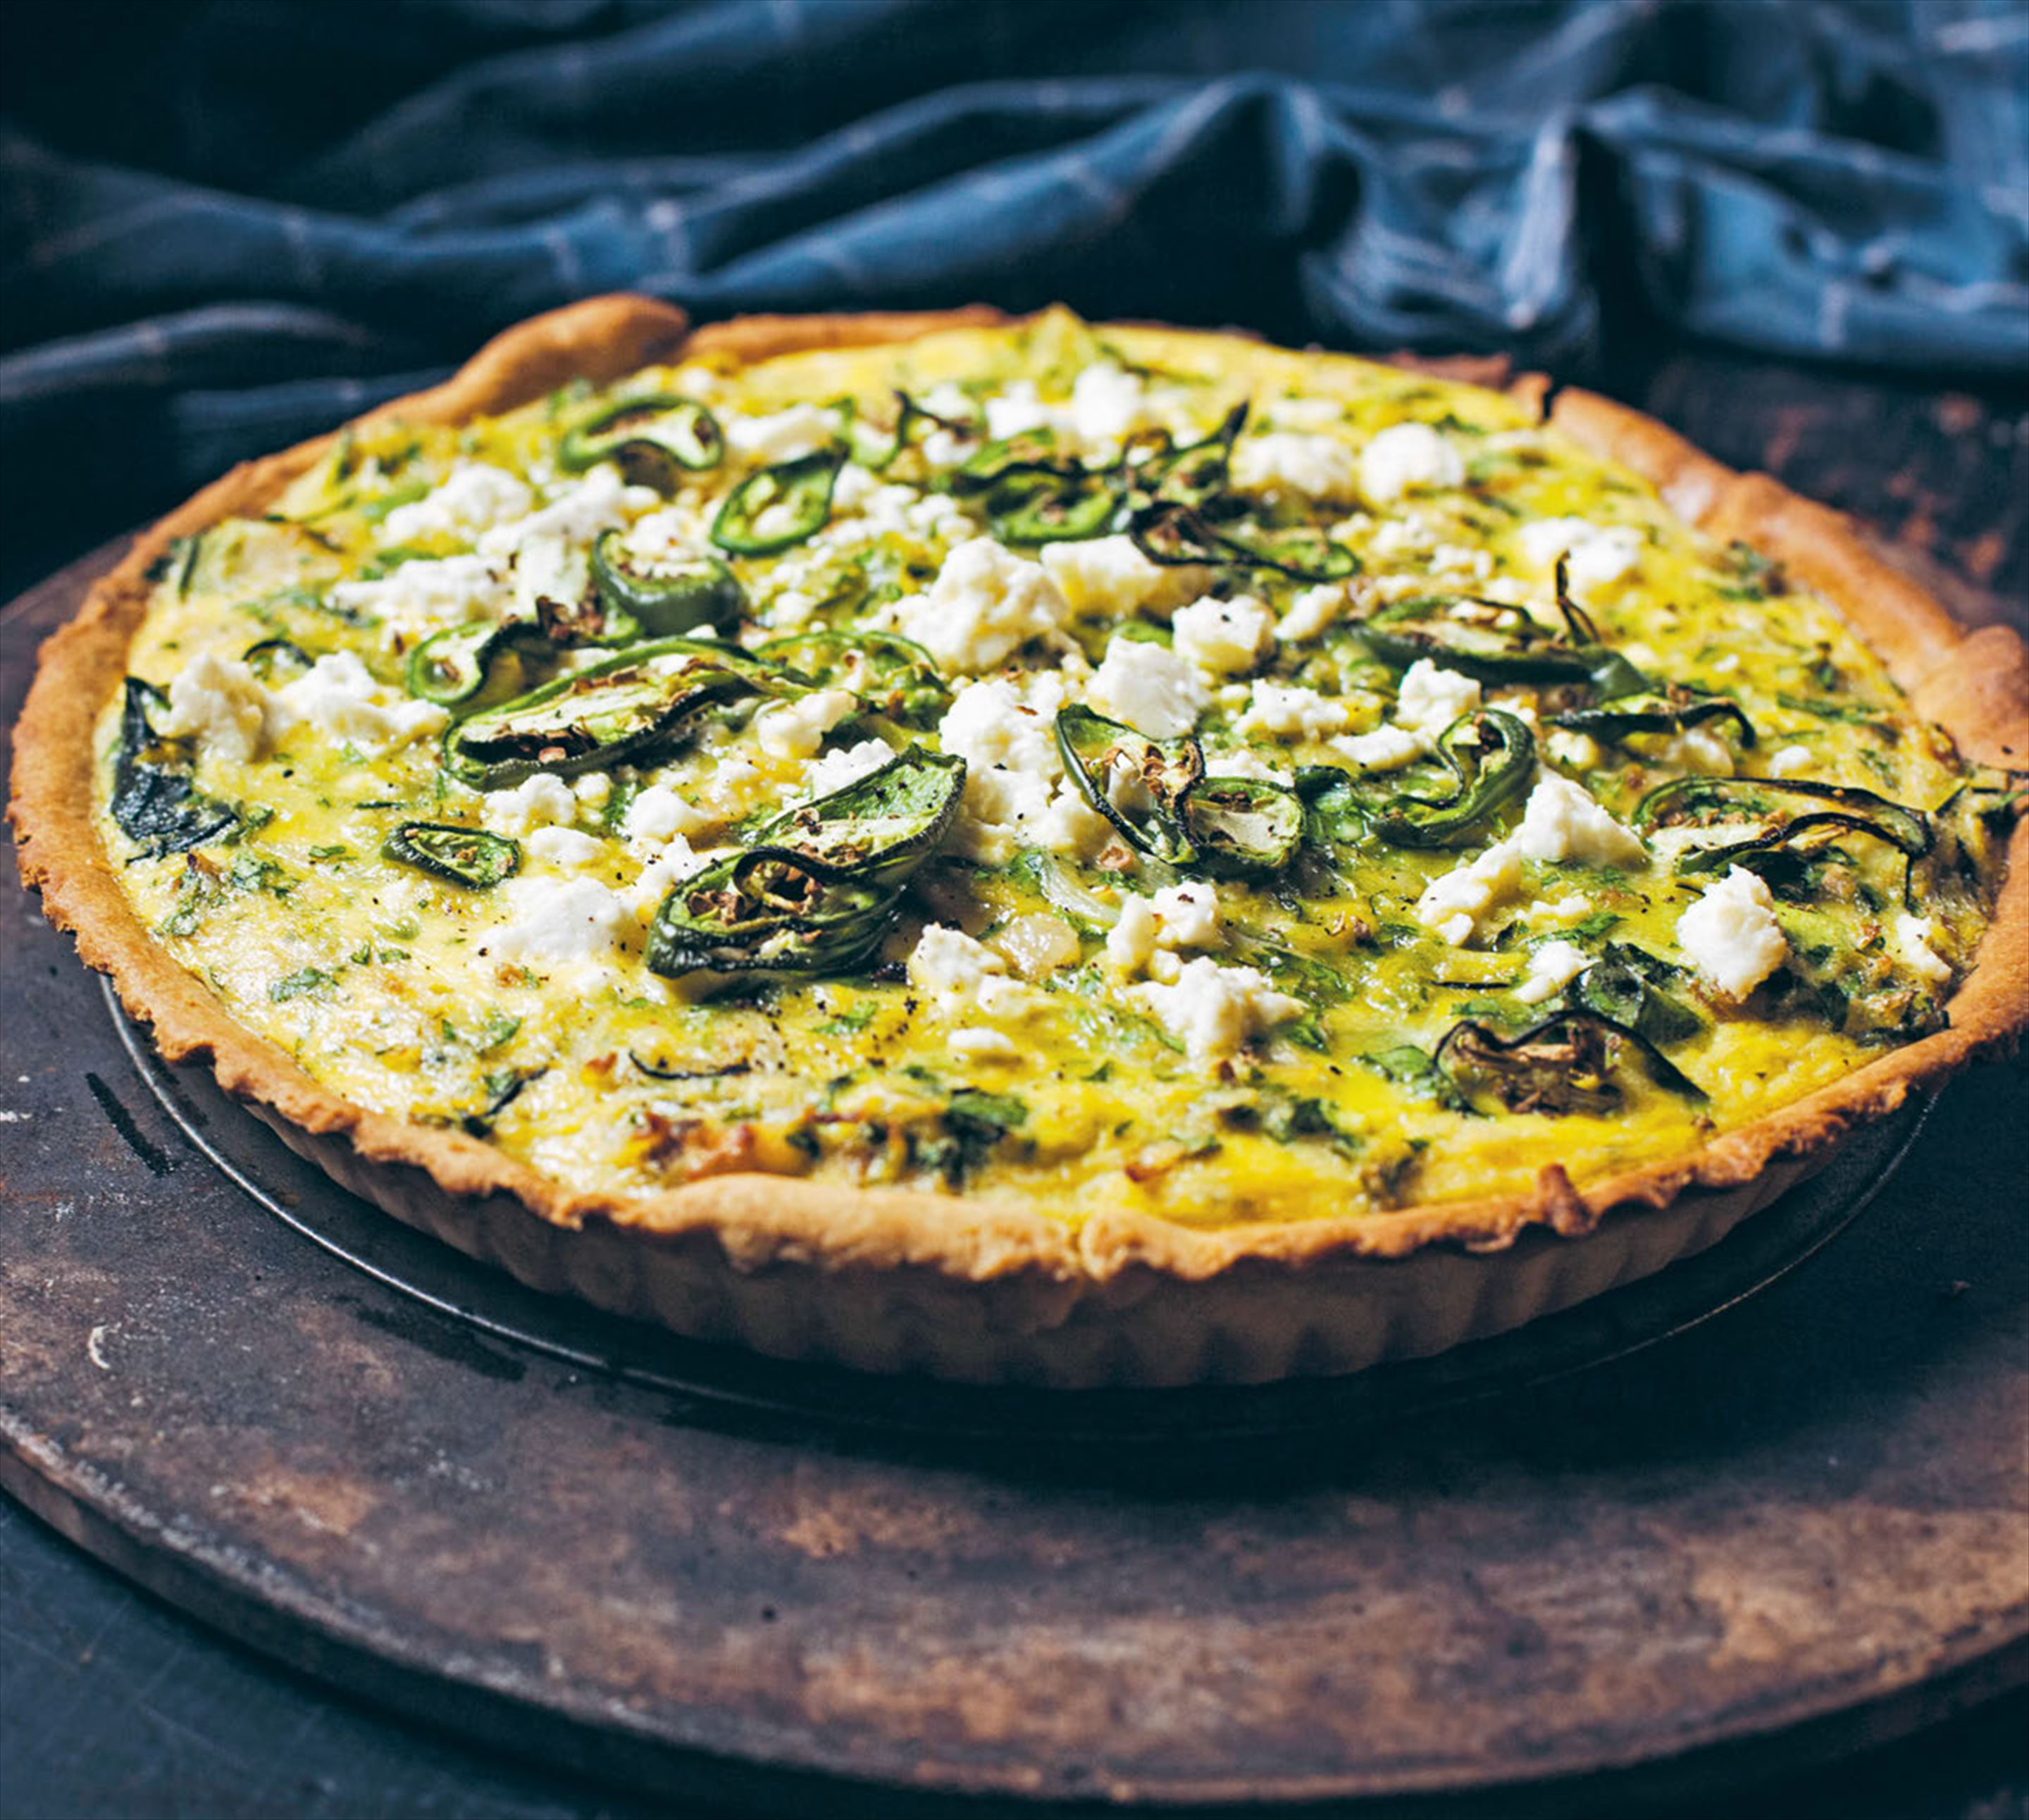 Backyarders' zucchini & smoked-bacon quiche